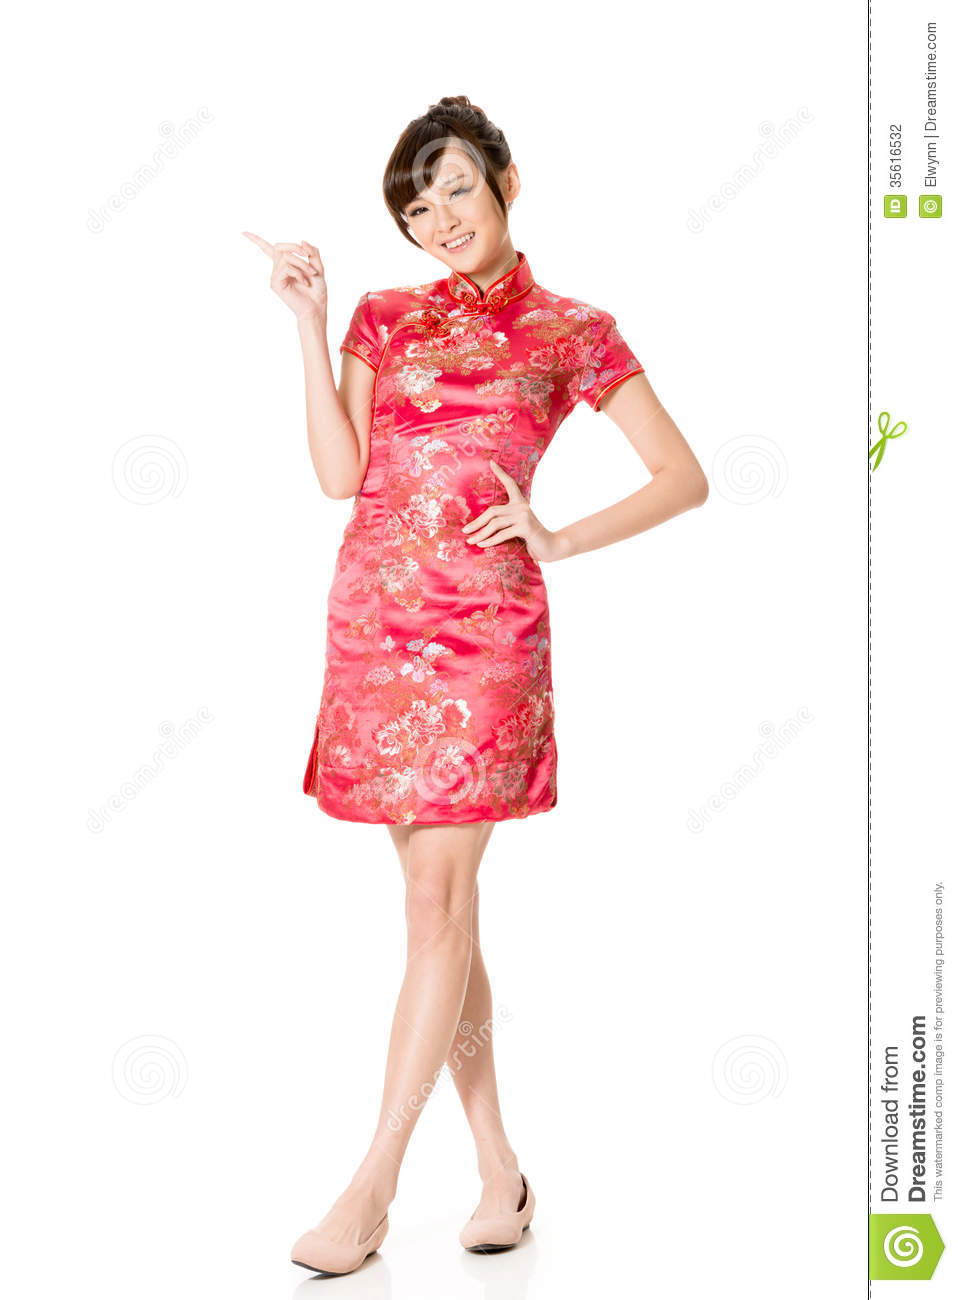 Traditional Chinese Clothing For Women Smiling chinese woman dress